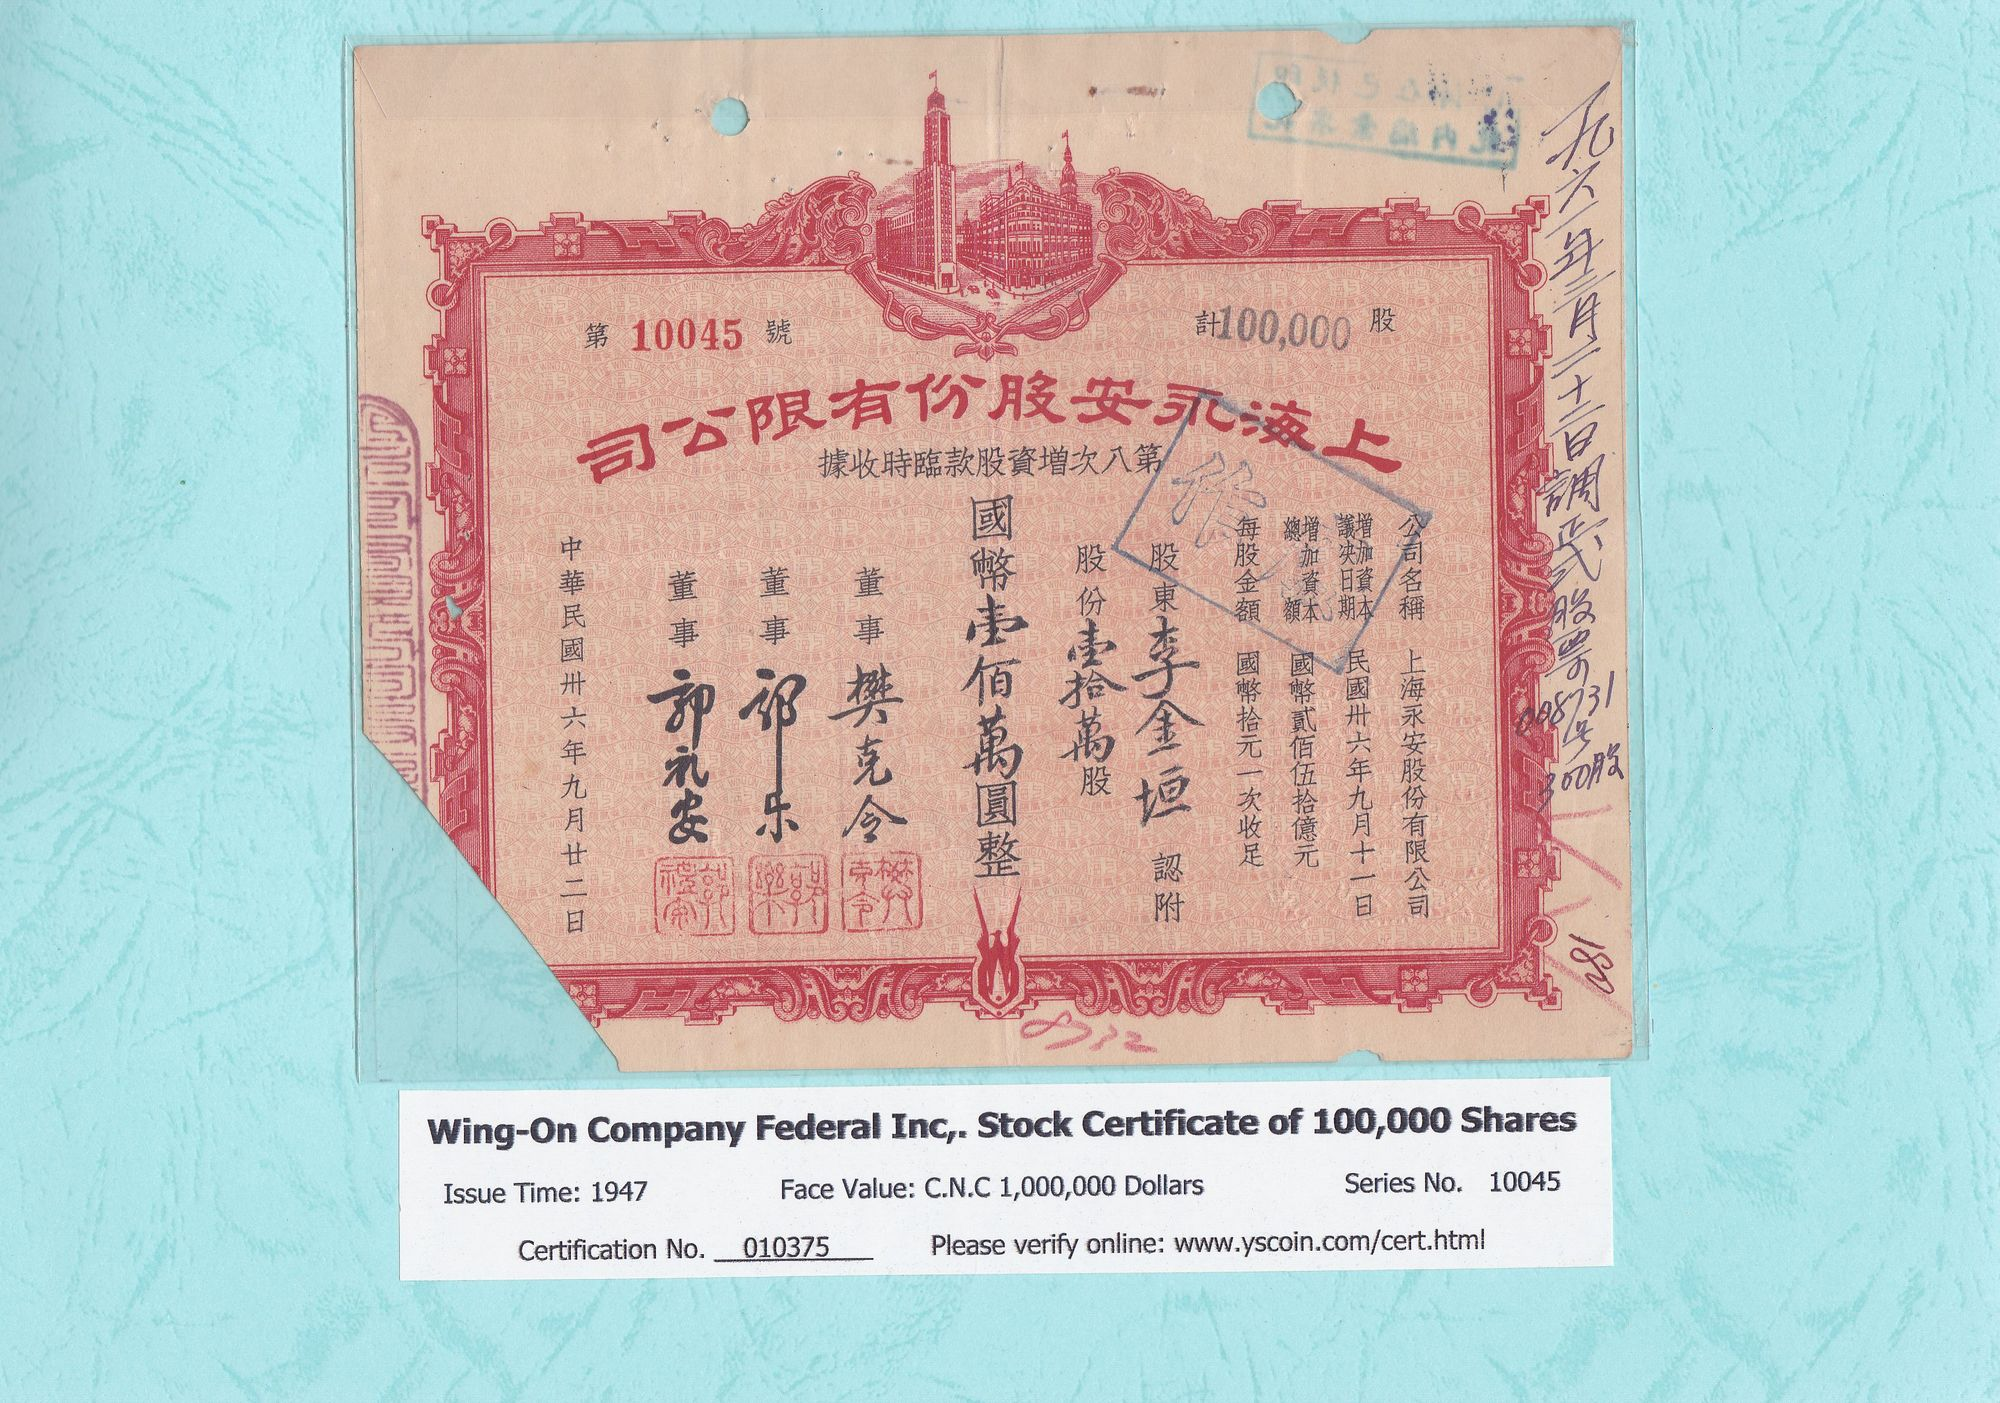 010375, Wing-On Company Federal Inc,. Stock Certificate of 100,000 Shares